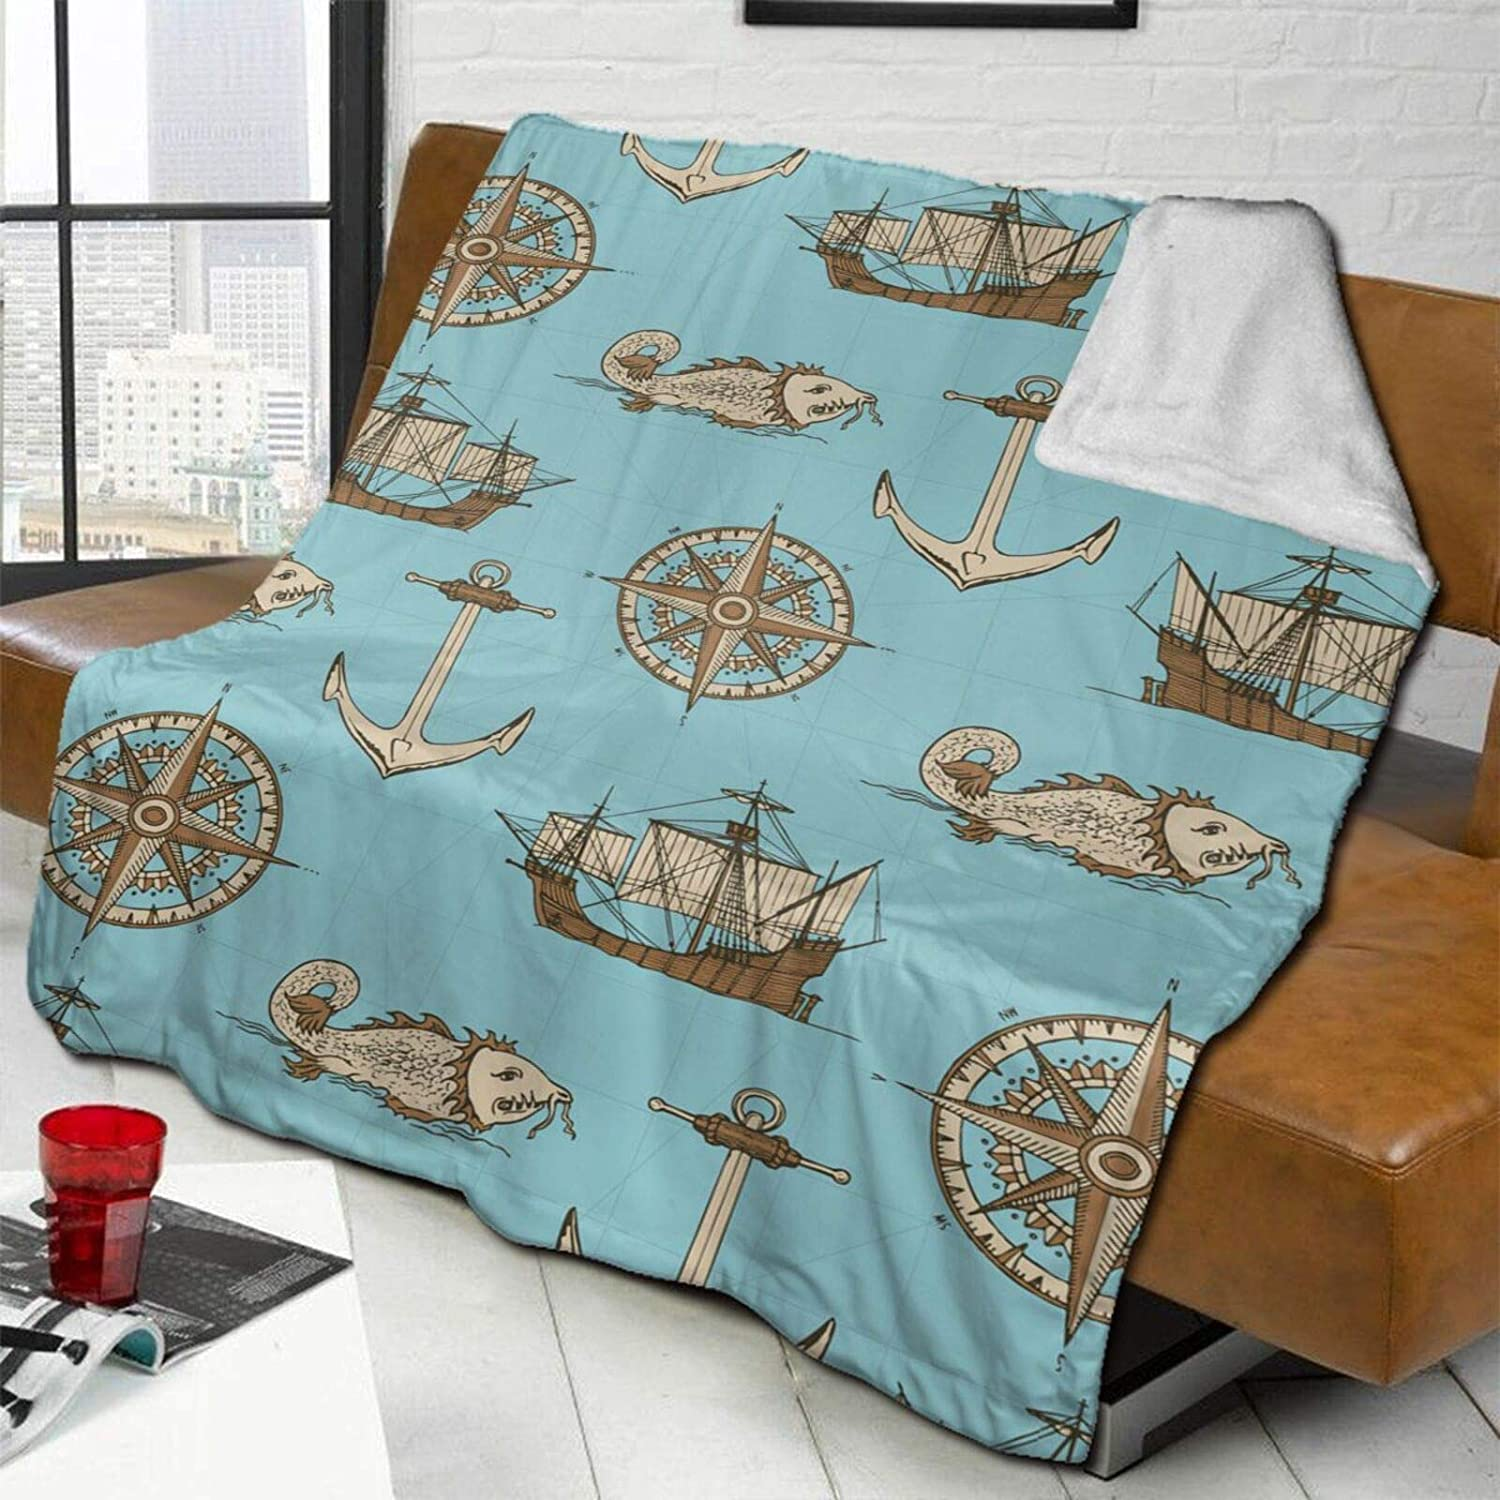 Old Nautical Map Lamb Wool Throw Soft Super Blanket Max 70% OFF free Double-Sided